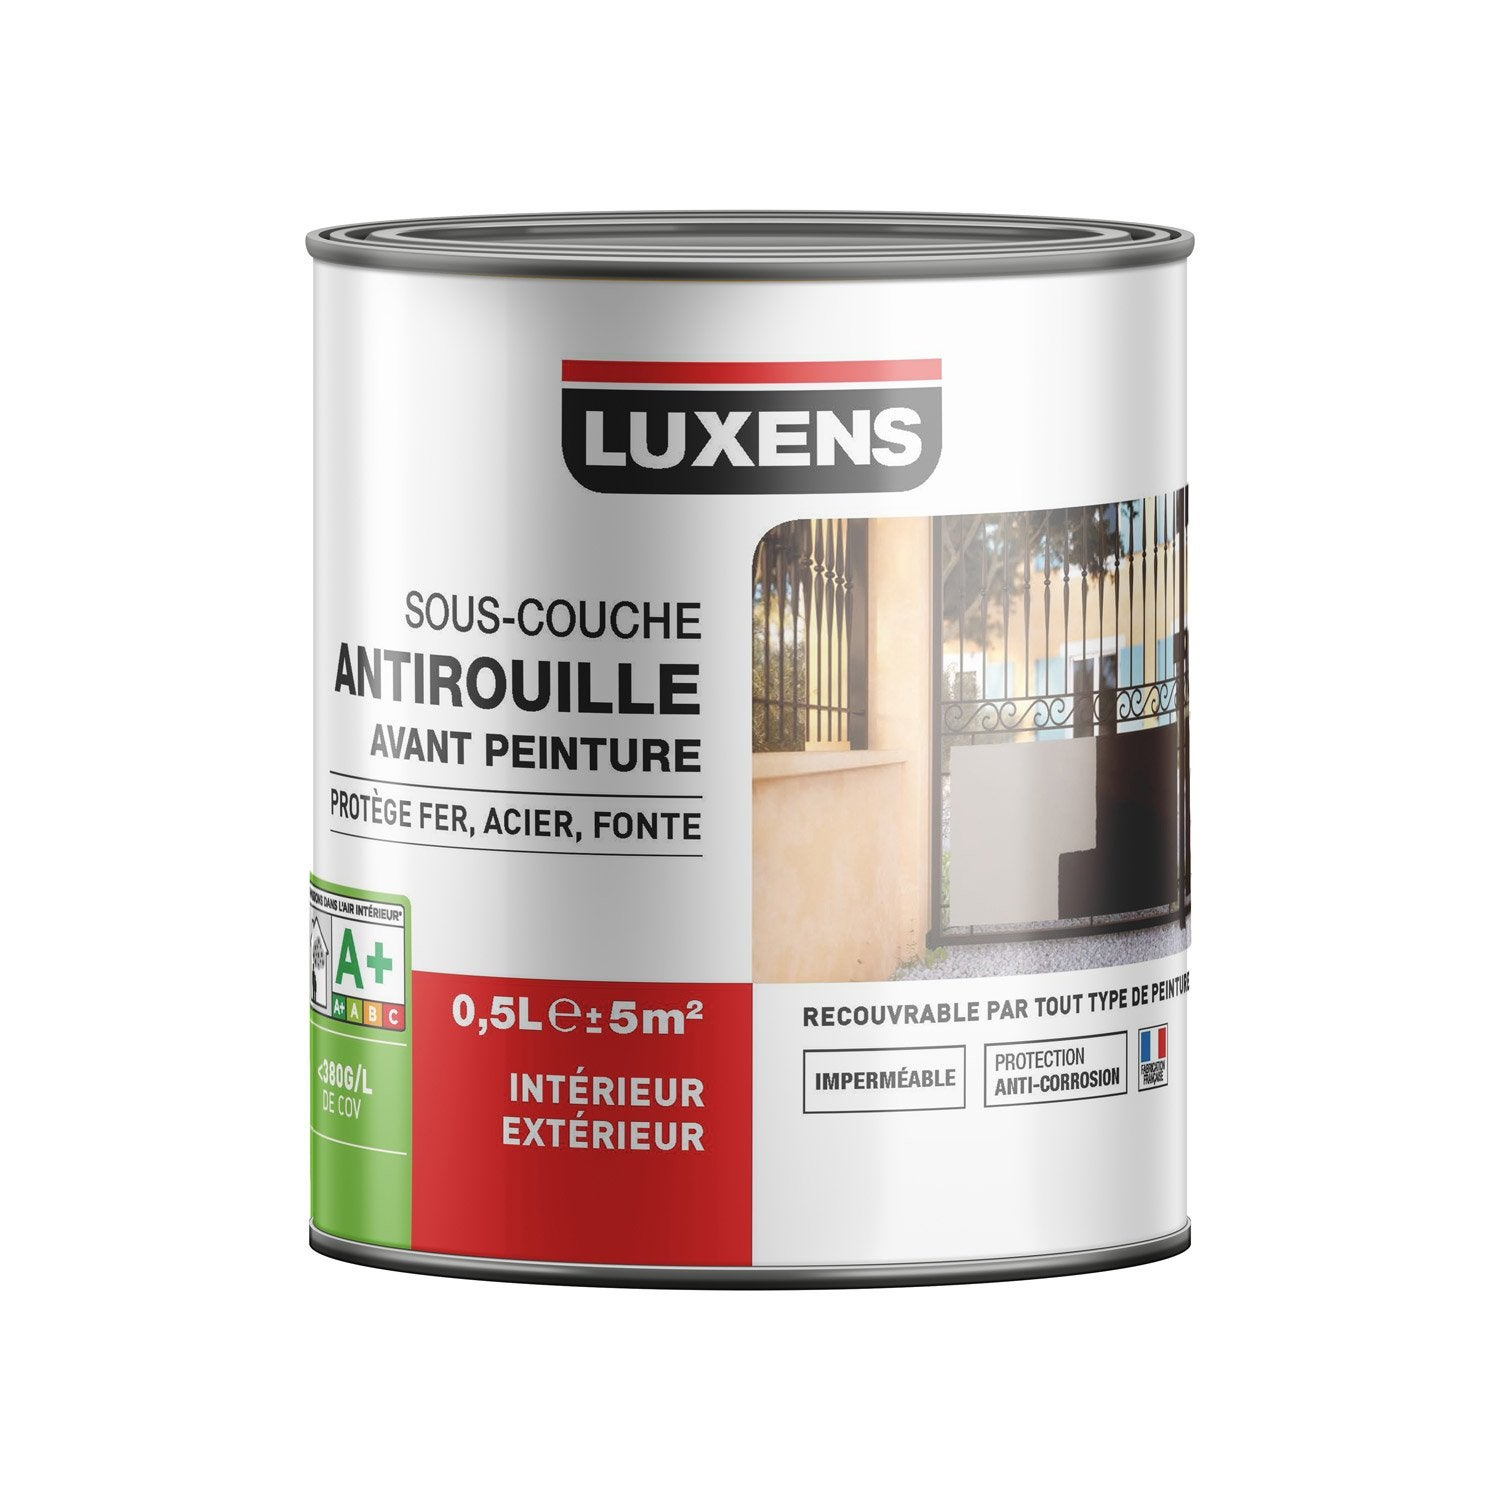 Sous Couche Fer / Antirouille LUXENS 0.5 L Nice Look